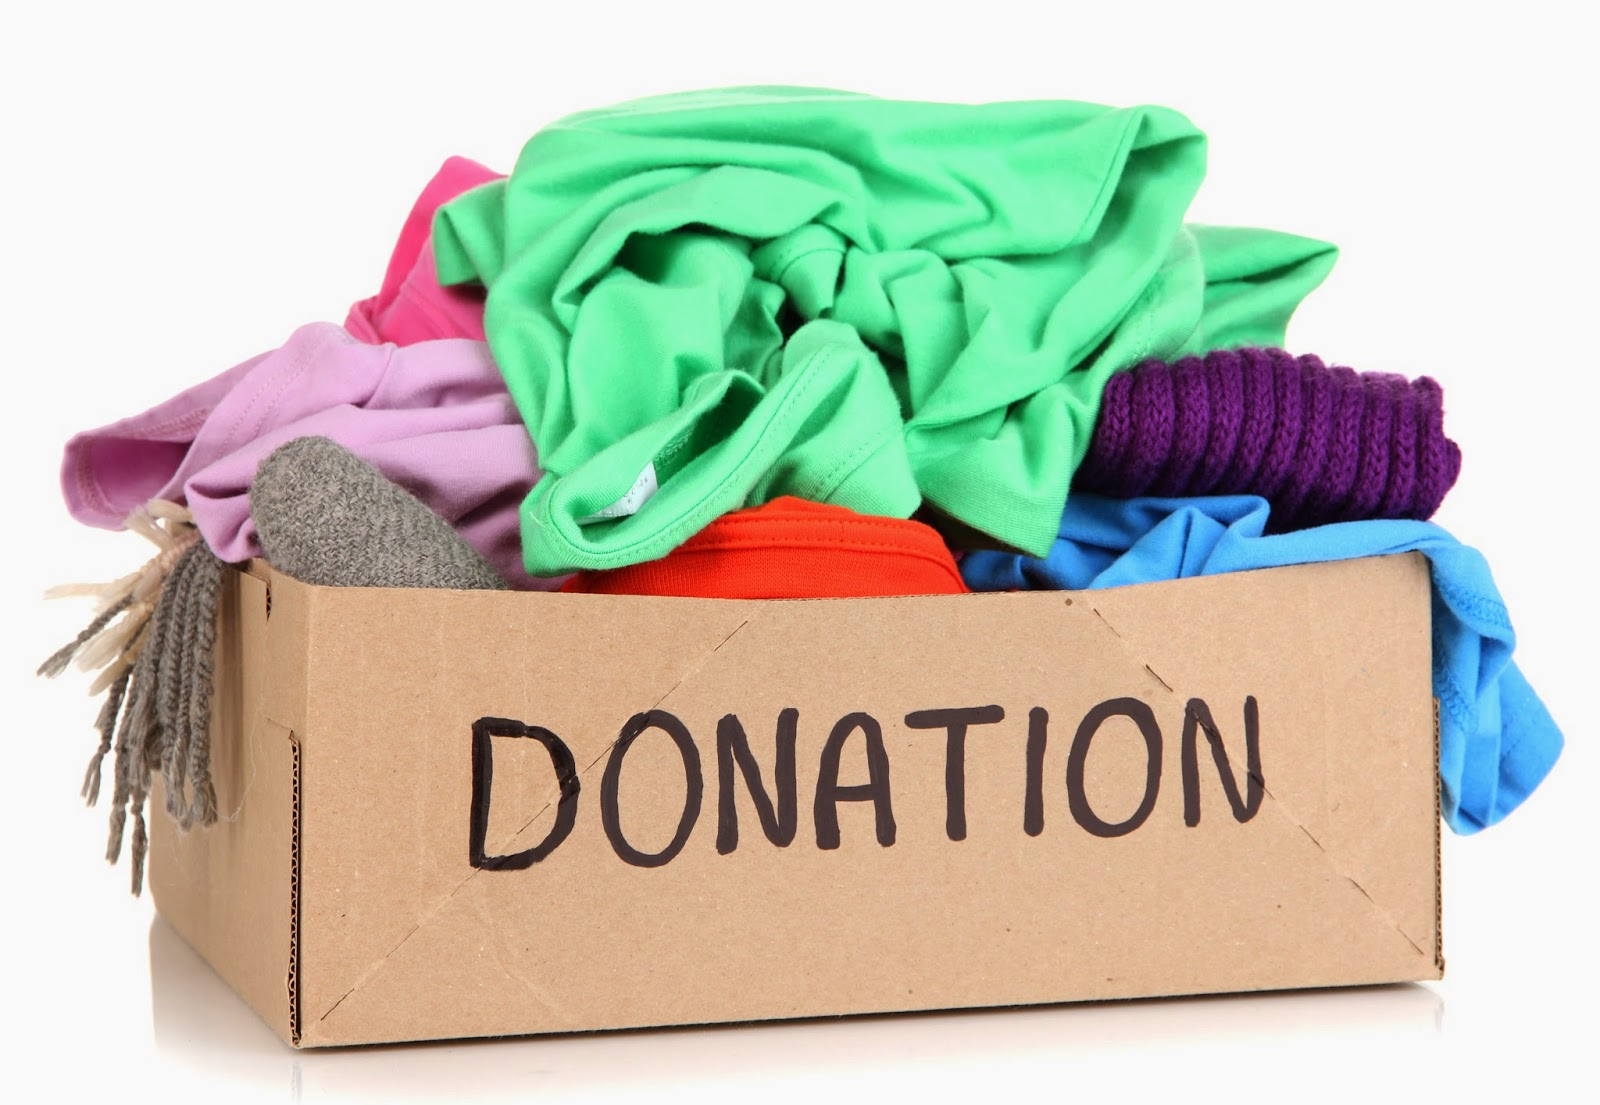 William whyte school coordinating one day clothing drive for Shirts that donate to charity